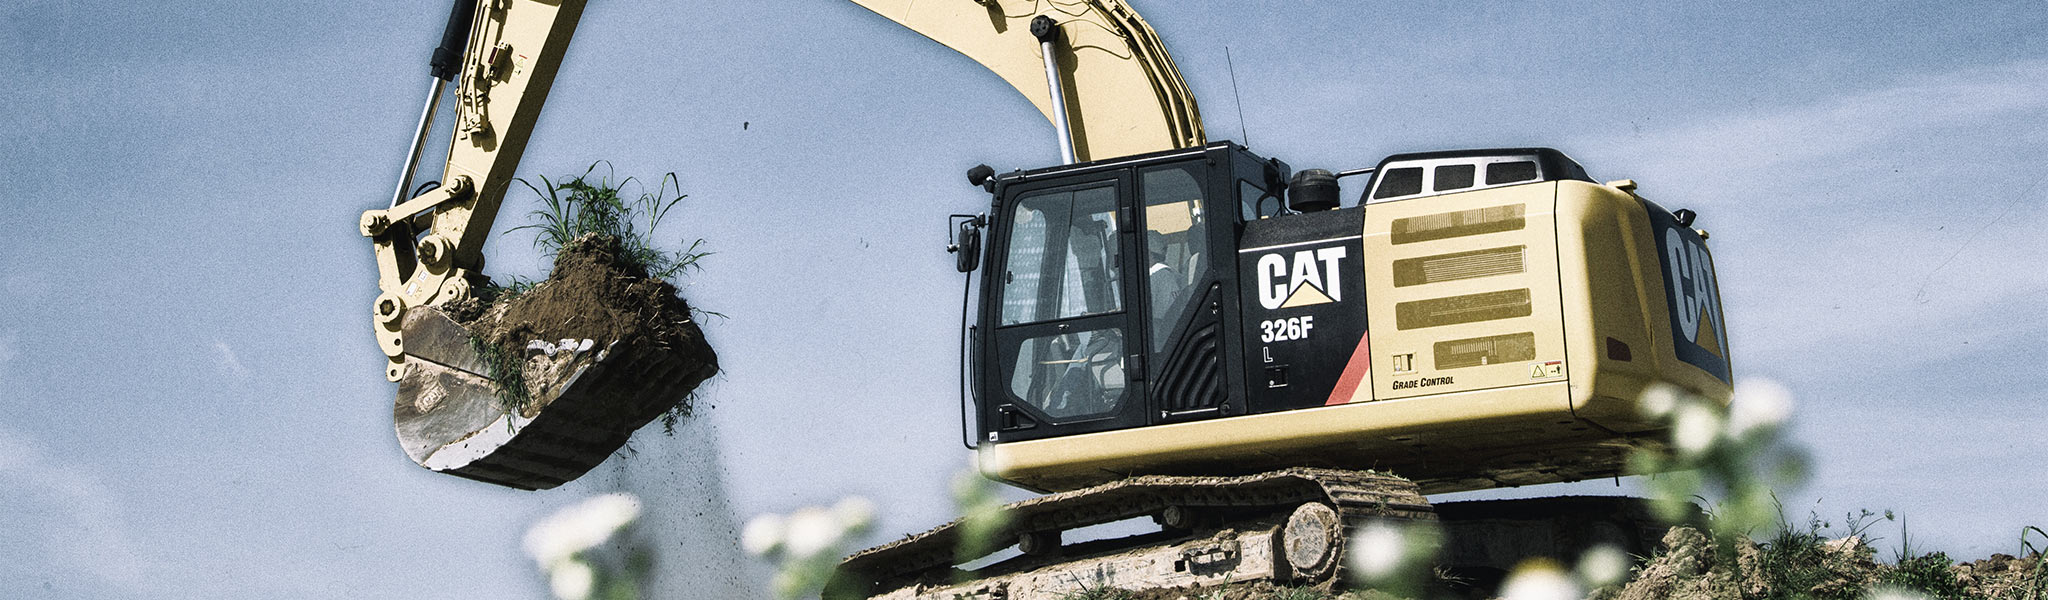 Plus, the 326F can be equipped with multiple Cat work tools to take on a variety of tasks.